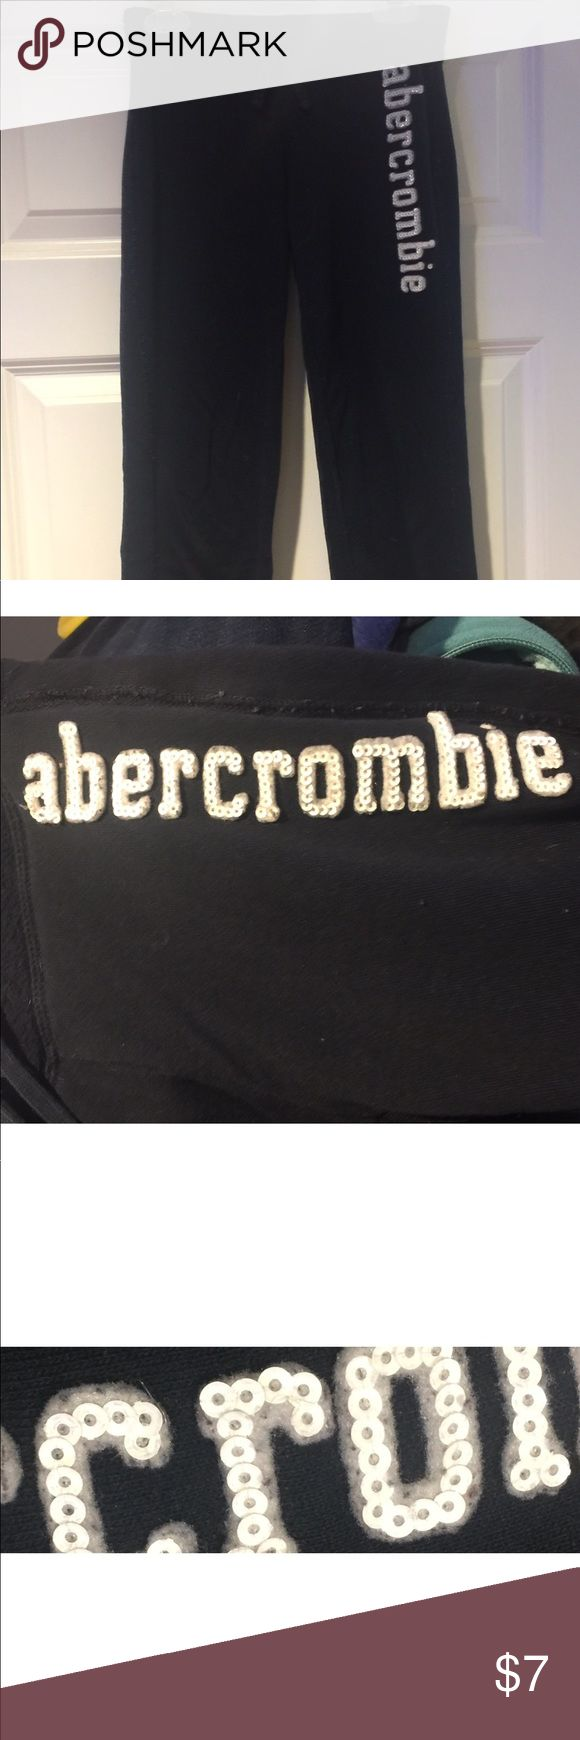 """Abercrombie Kids Girl's Sweatpants Abercrombie Kids girl's navy blue sweatpants, size 7/8. These cotton pants are soft & comfy. They have the name """"Abercrombie"""" in white sequins down the left leg in front (see pics 2 & 3; pic 3 is a close up in the sequins...ALL are intact & secure! 👍🏼) These sweats may or may not have some small """"pills"""" on them; it's just the nature of this fabric being washed. If you notice any, they can easily be removed with a sweater shaver😊. abercrombie kids Bottoms…"""